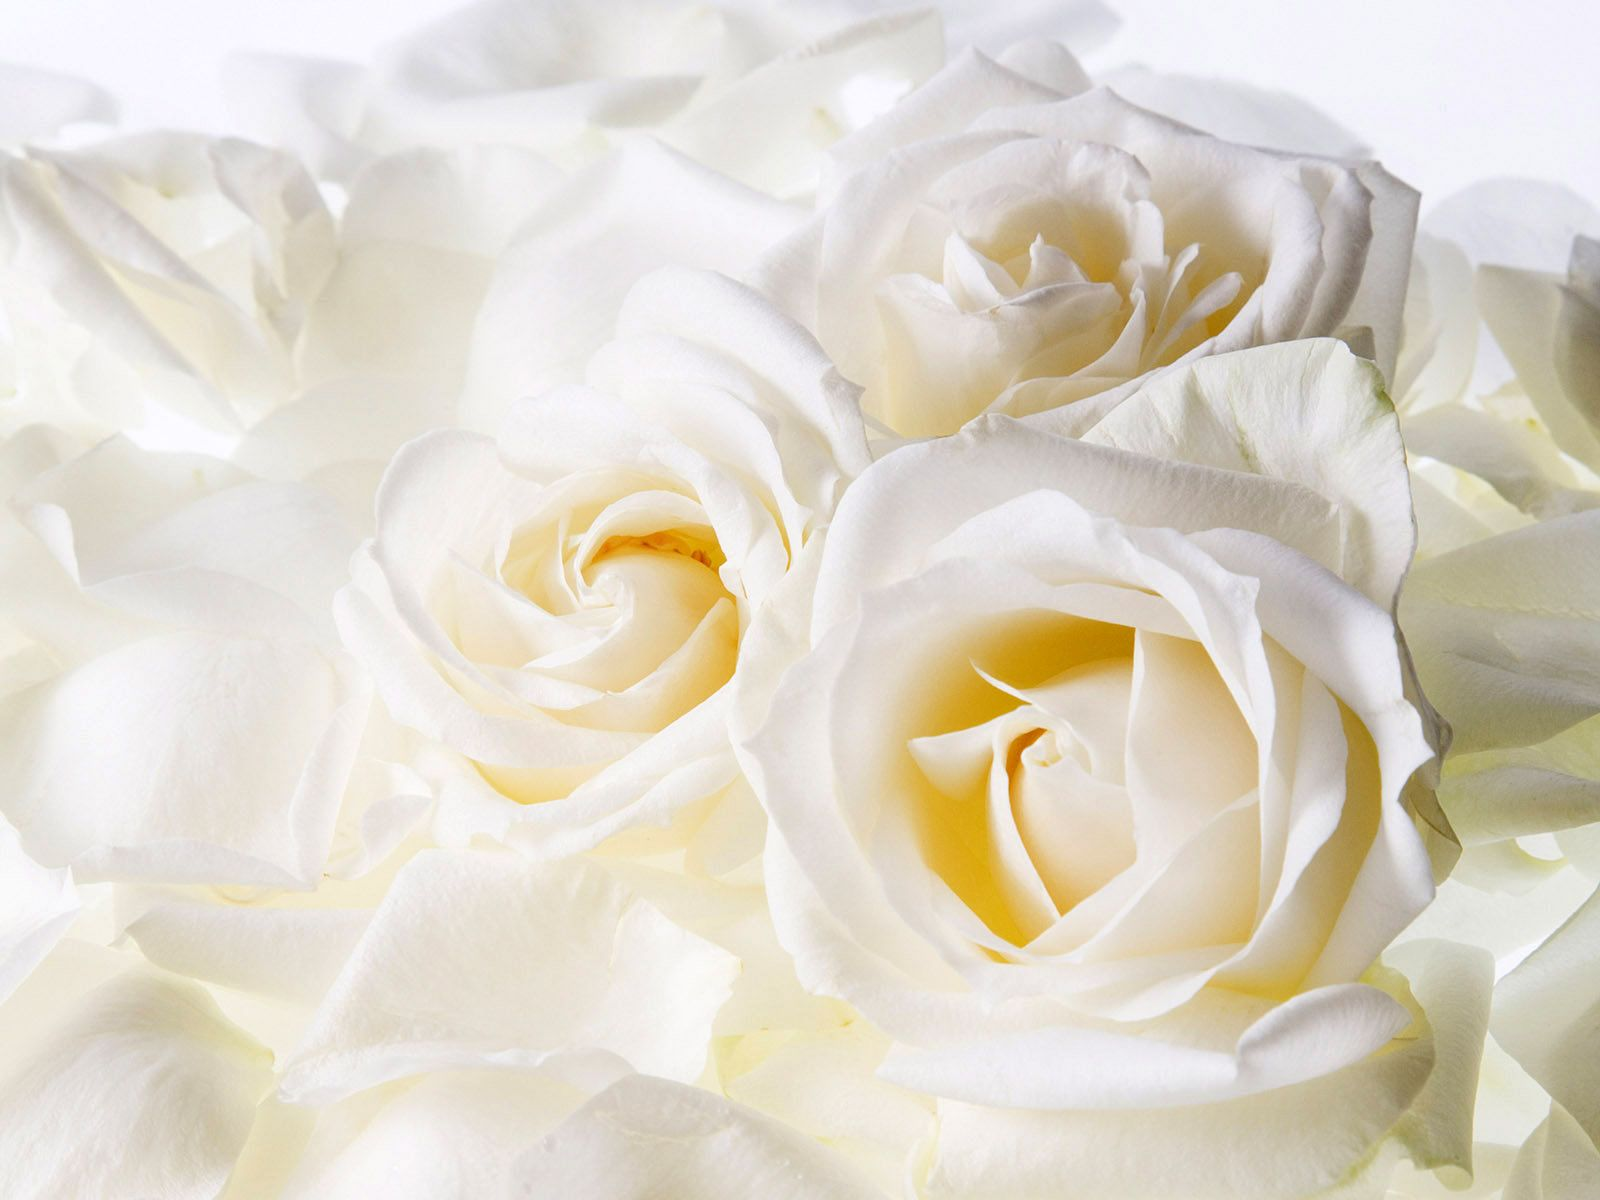 White rose hd photos flowers wallpapers collections free download pixhome wallpaper images mightylinksfo